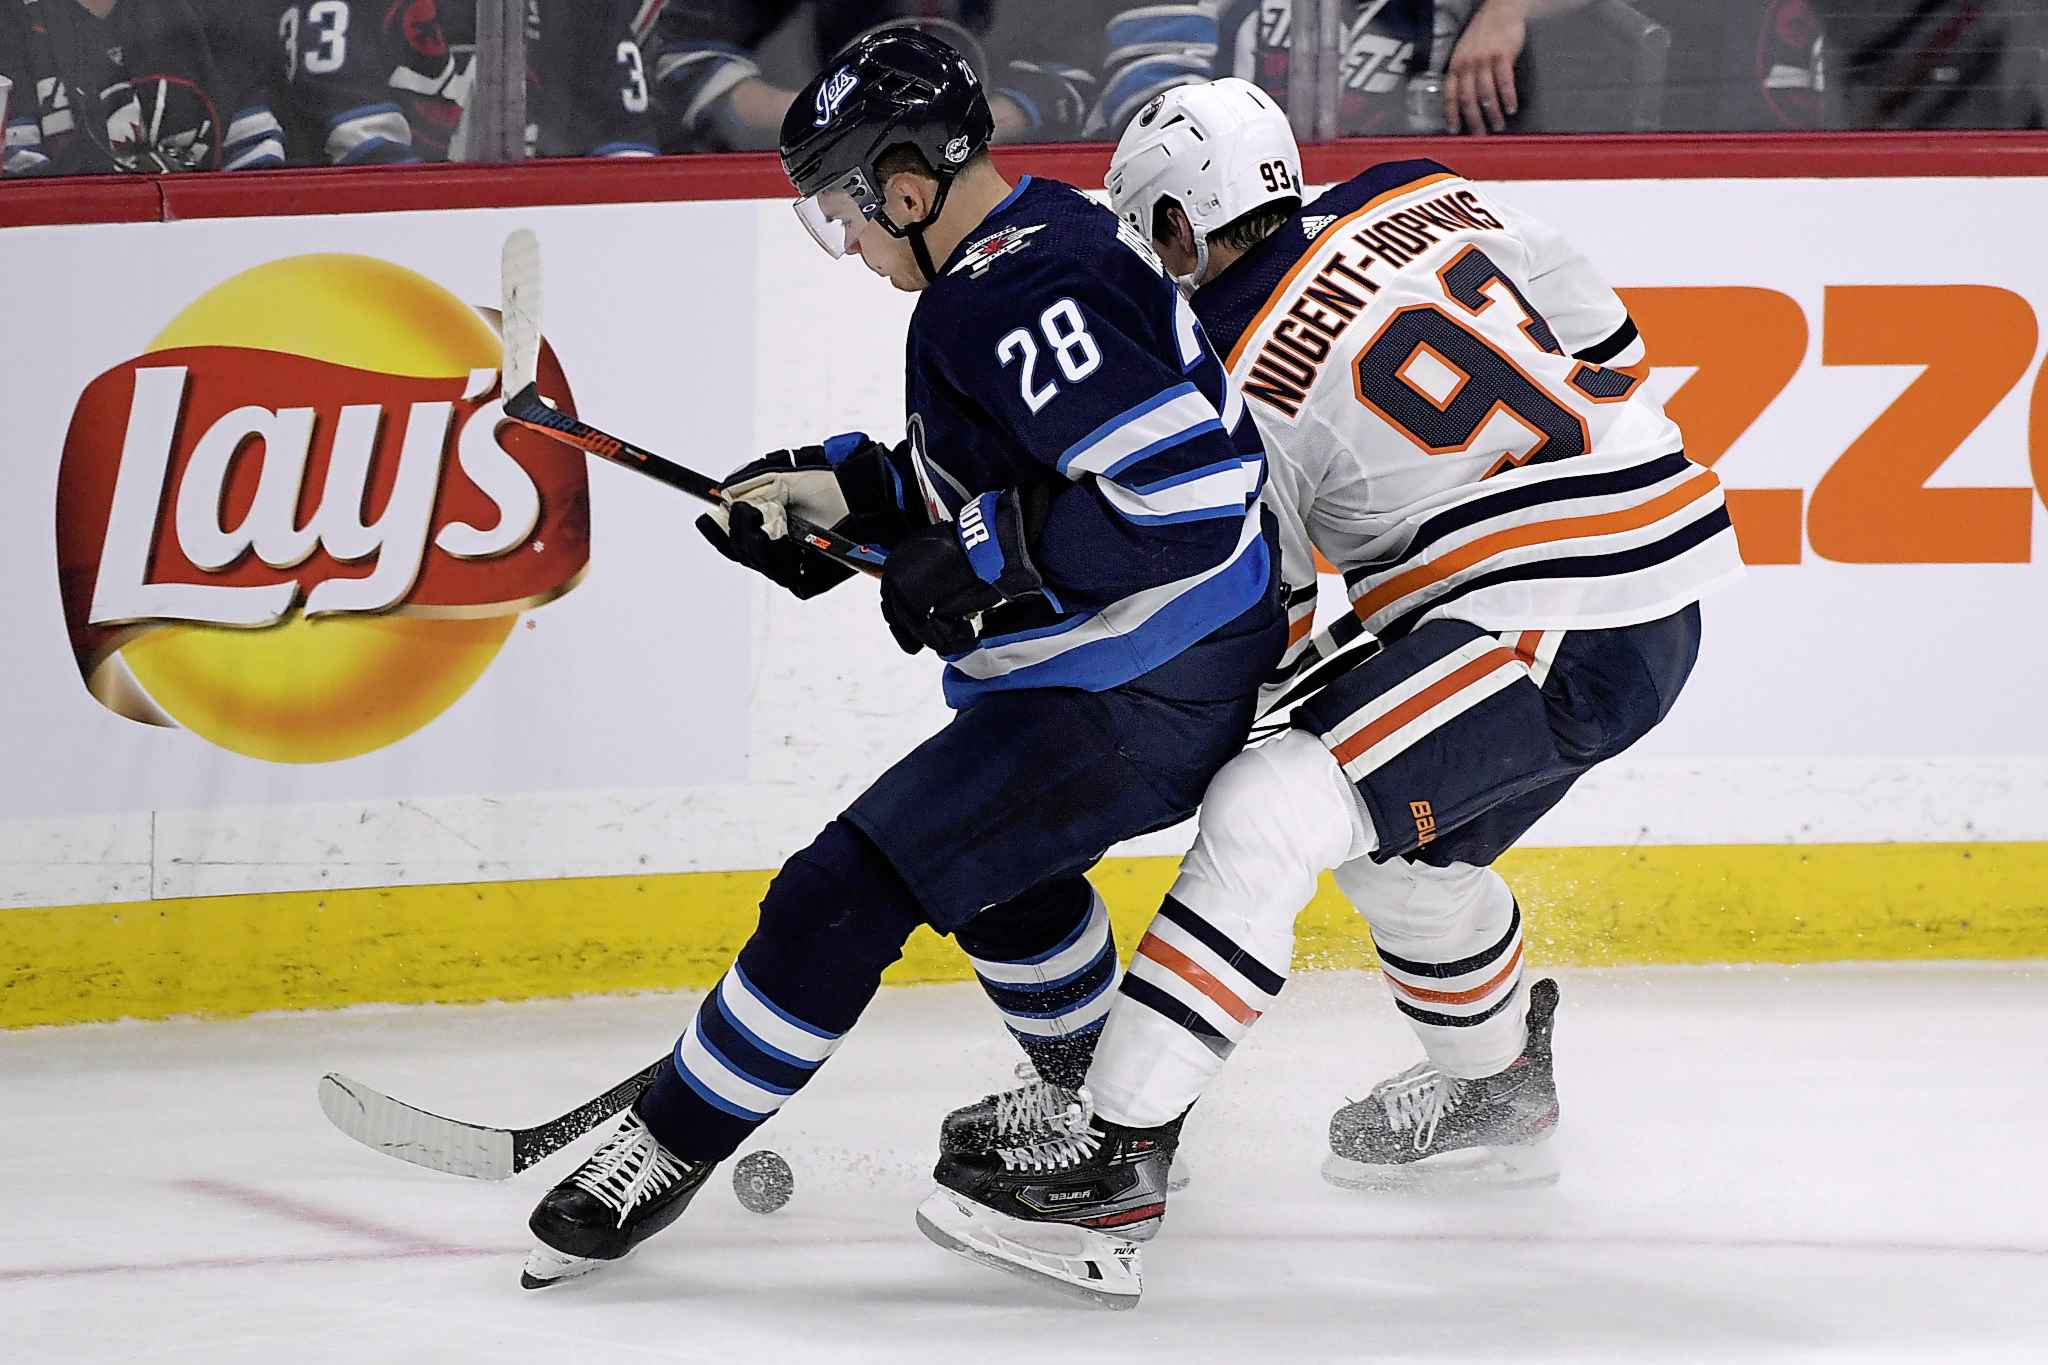 Winnipeg Jets' Jack Roslovic (28) and Edmonton Oilers' Ryan Nugent-Hopkins (93) chase a loose puck during the first period Sunday.